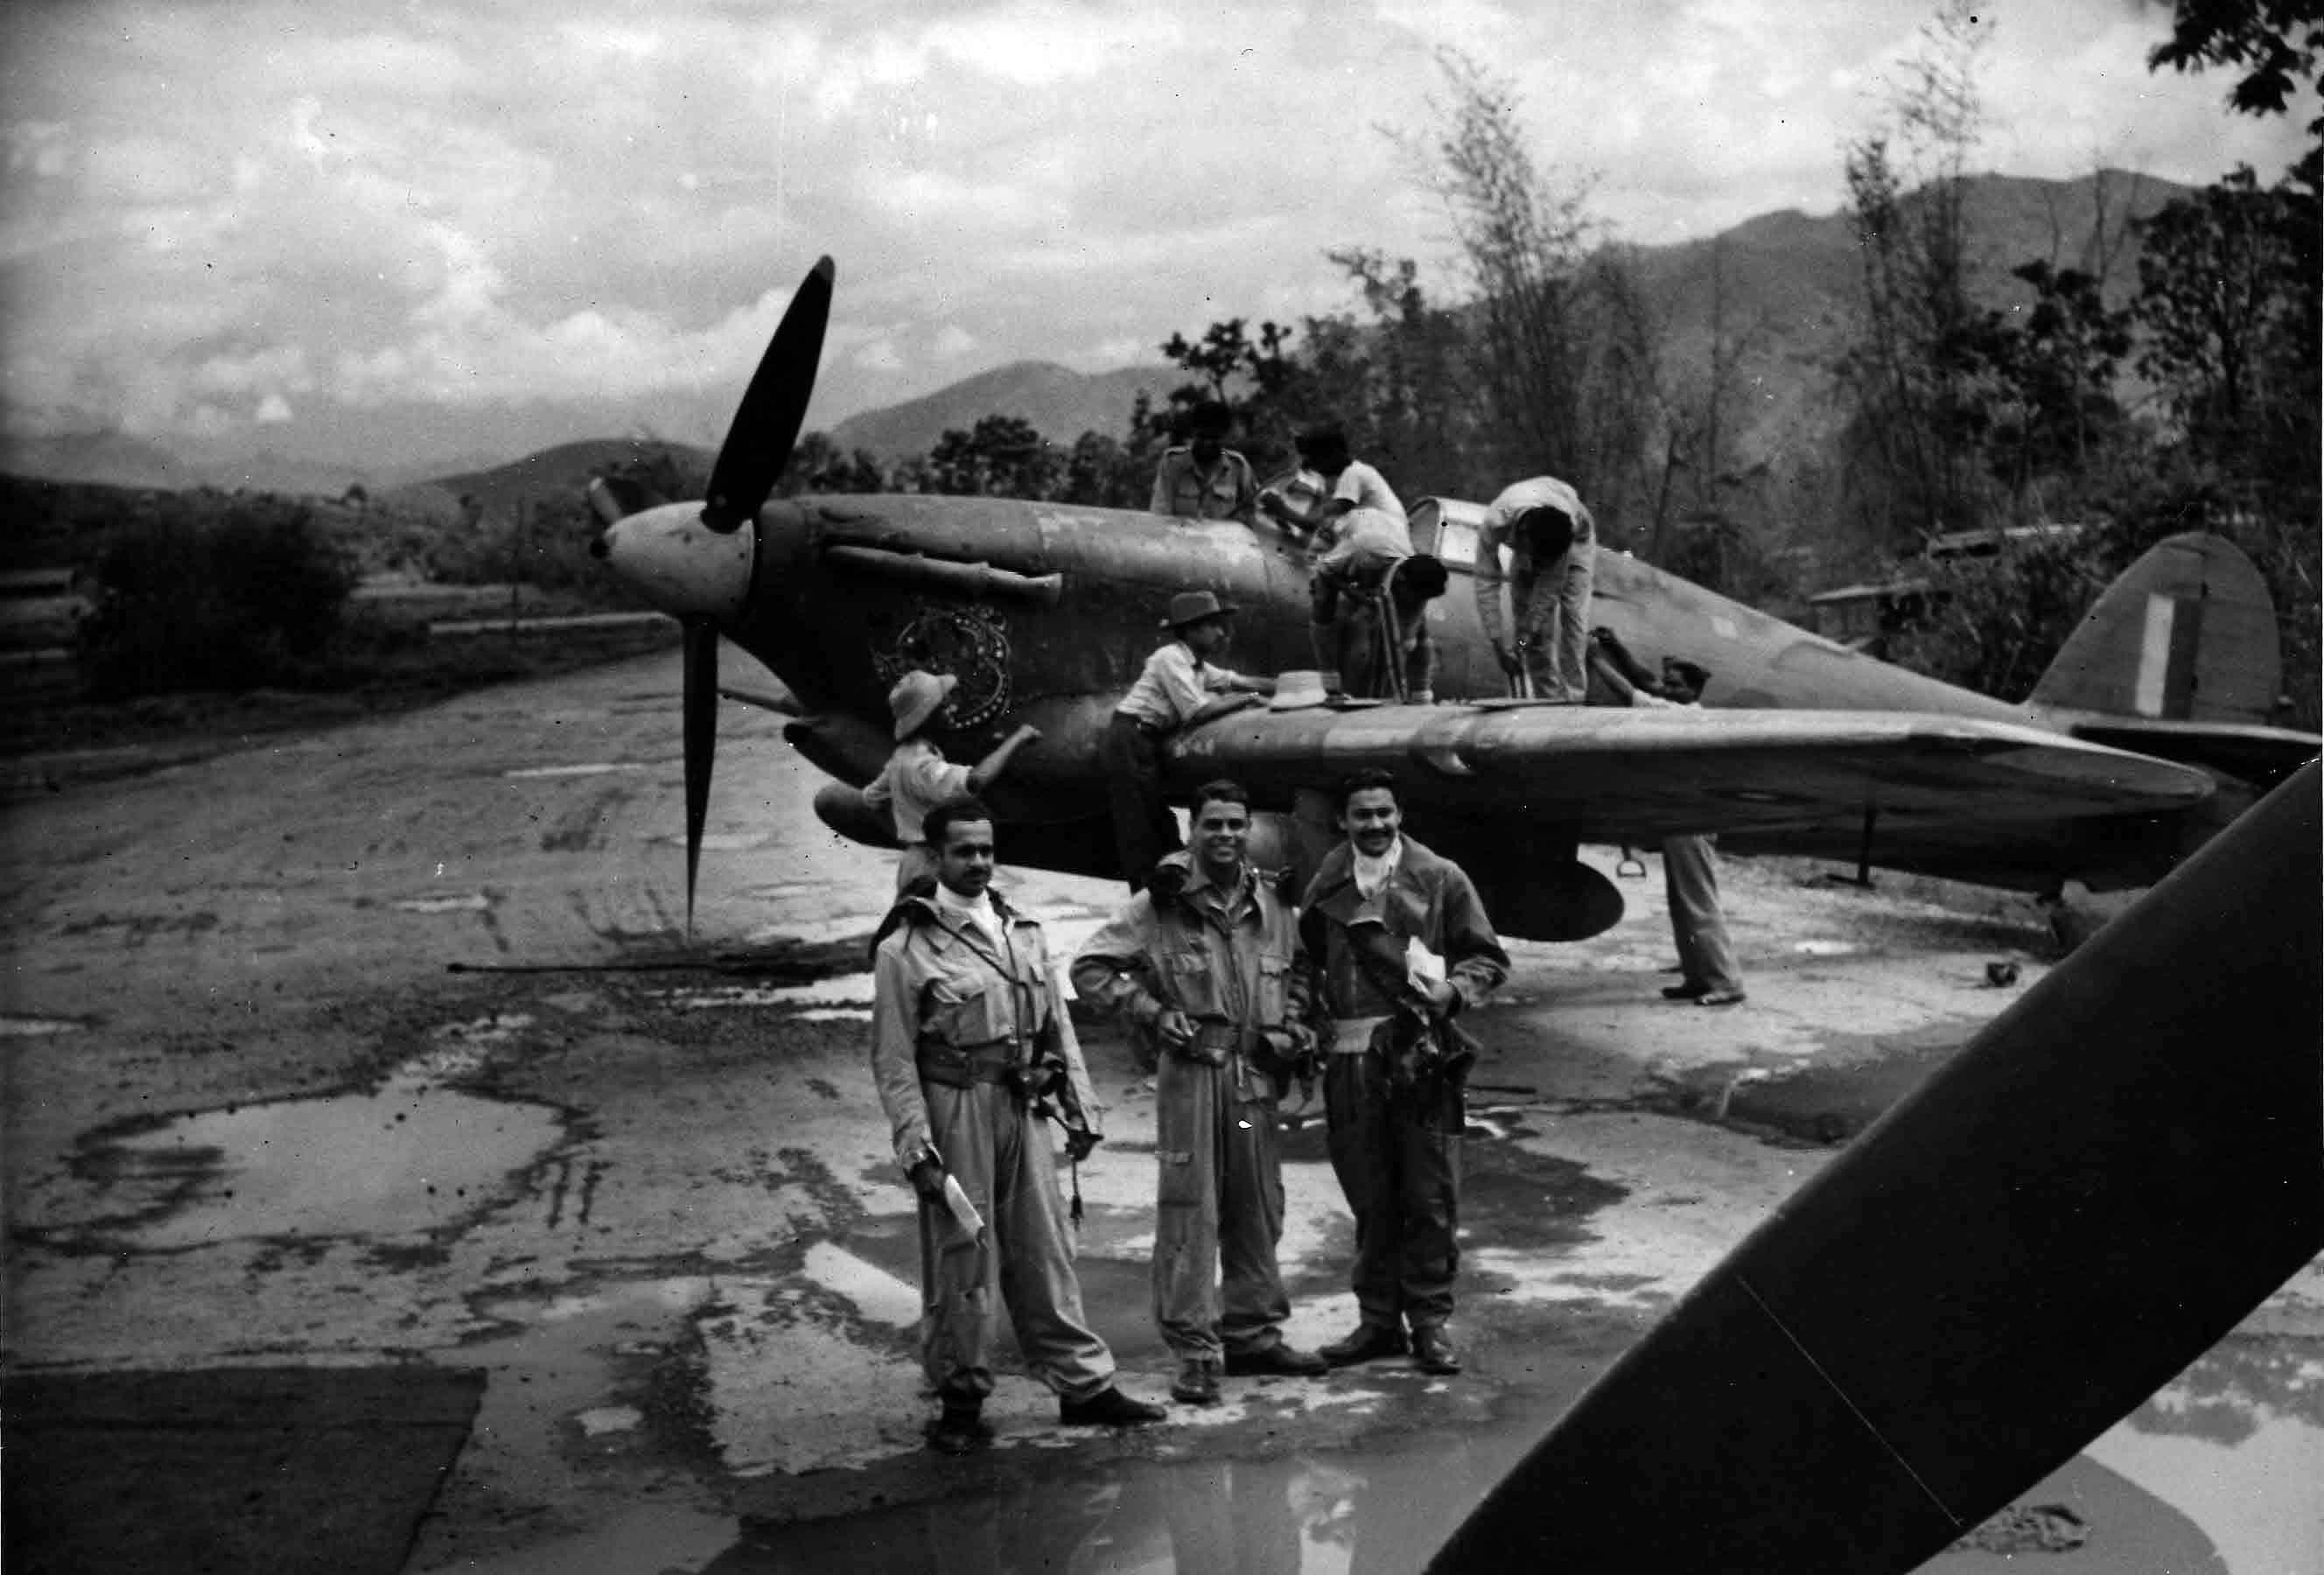 Indian Air Force pilots standing in front of a Hawker Hurricane, c. 1944